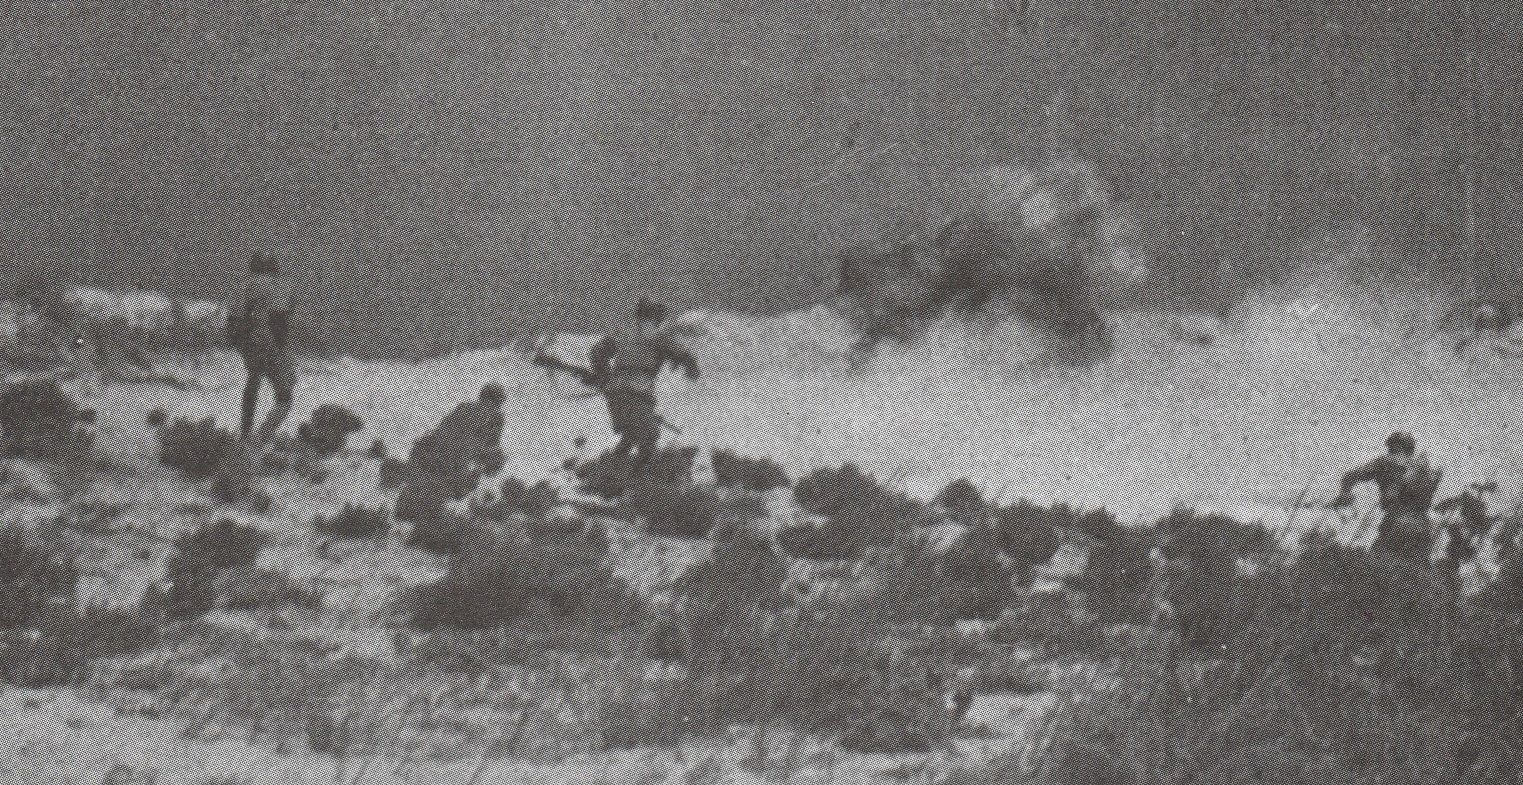 Paratroopers attack enemy lines during the battle of El Alamein